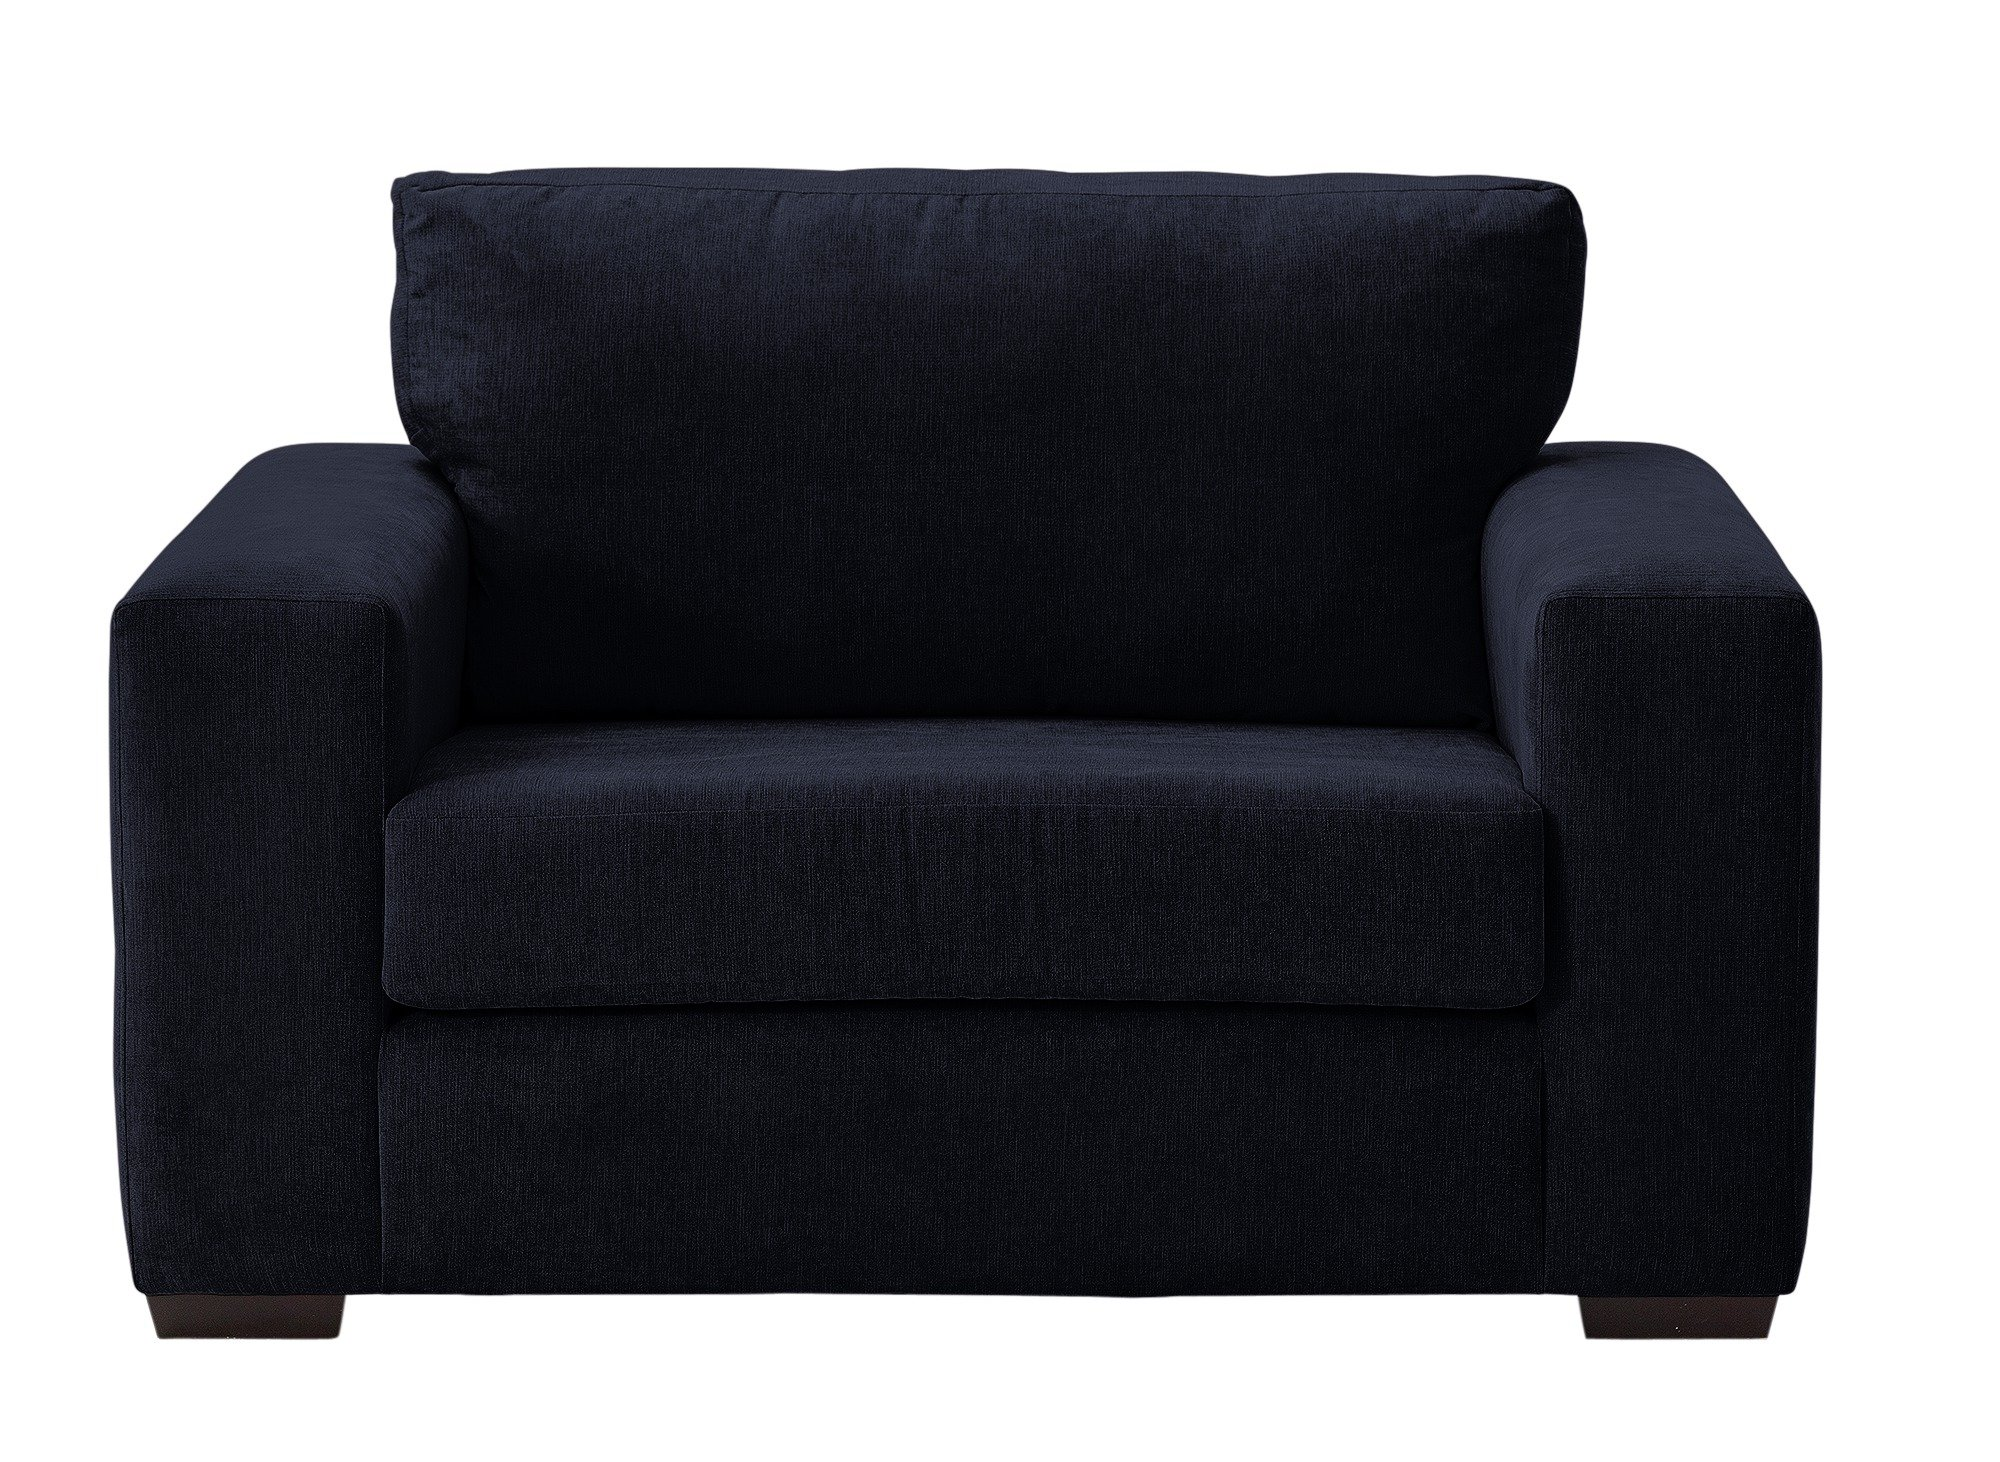 Argos Home Eton Fabric Cuddle Chair - Black